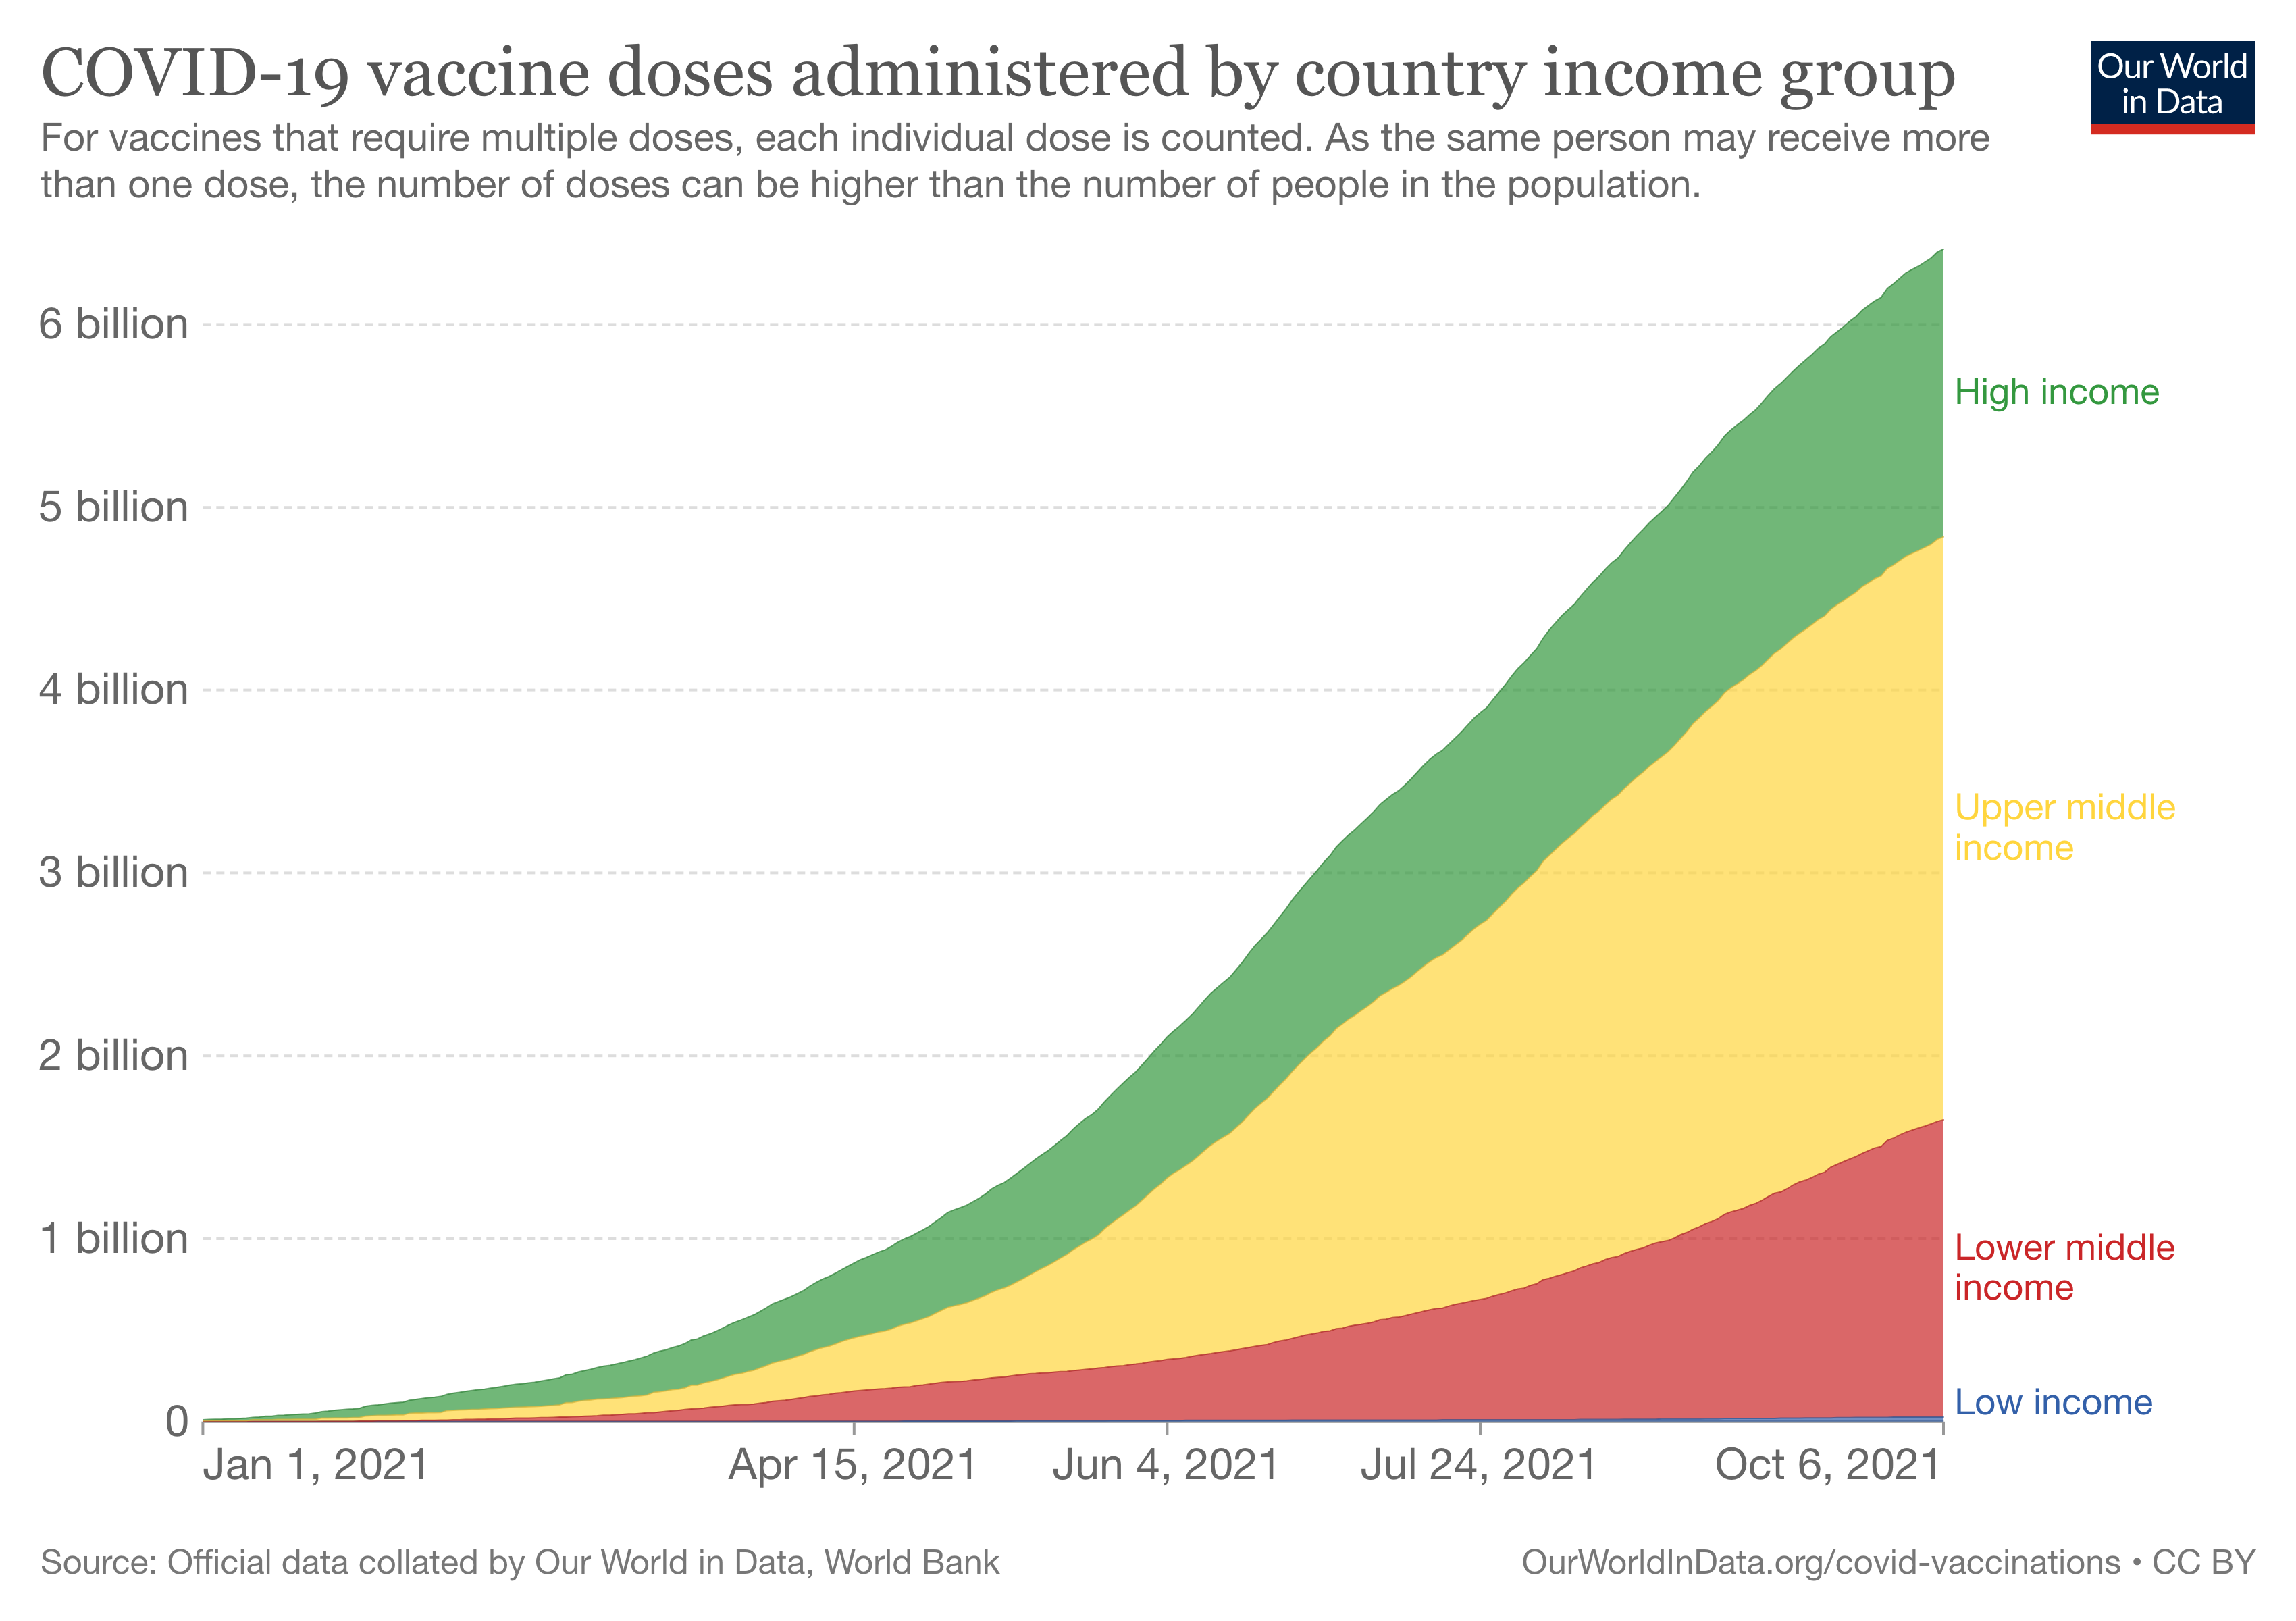 COVID-19 vaccine doses administered by continent.